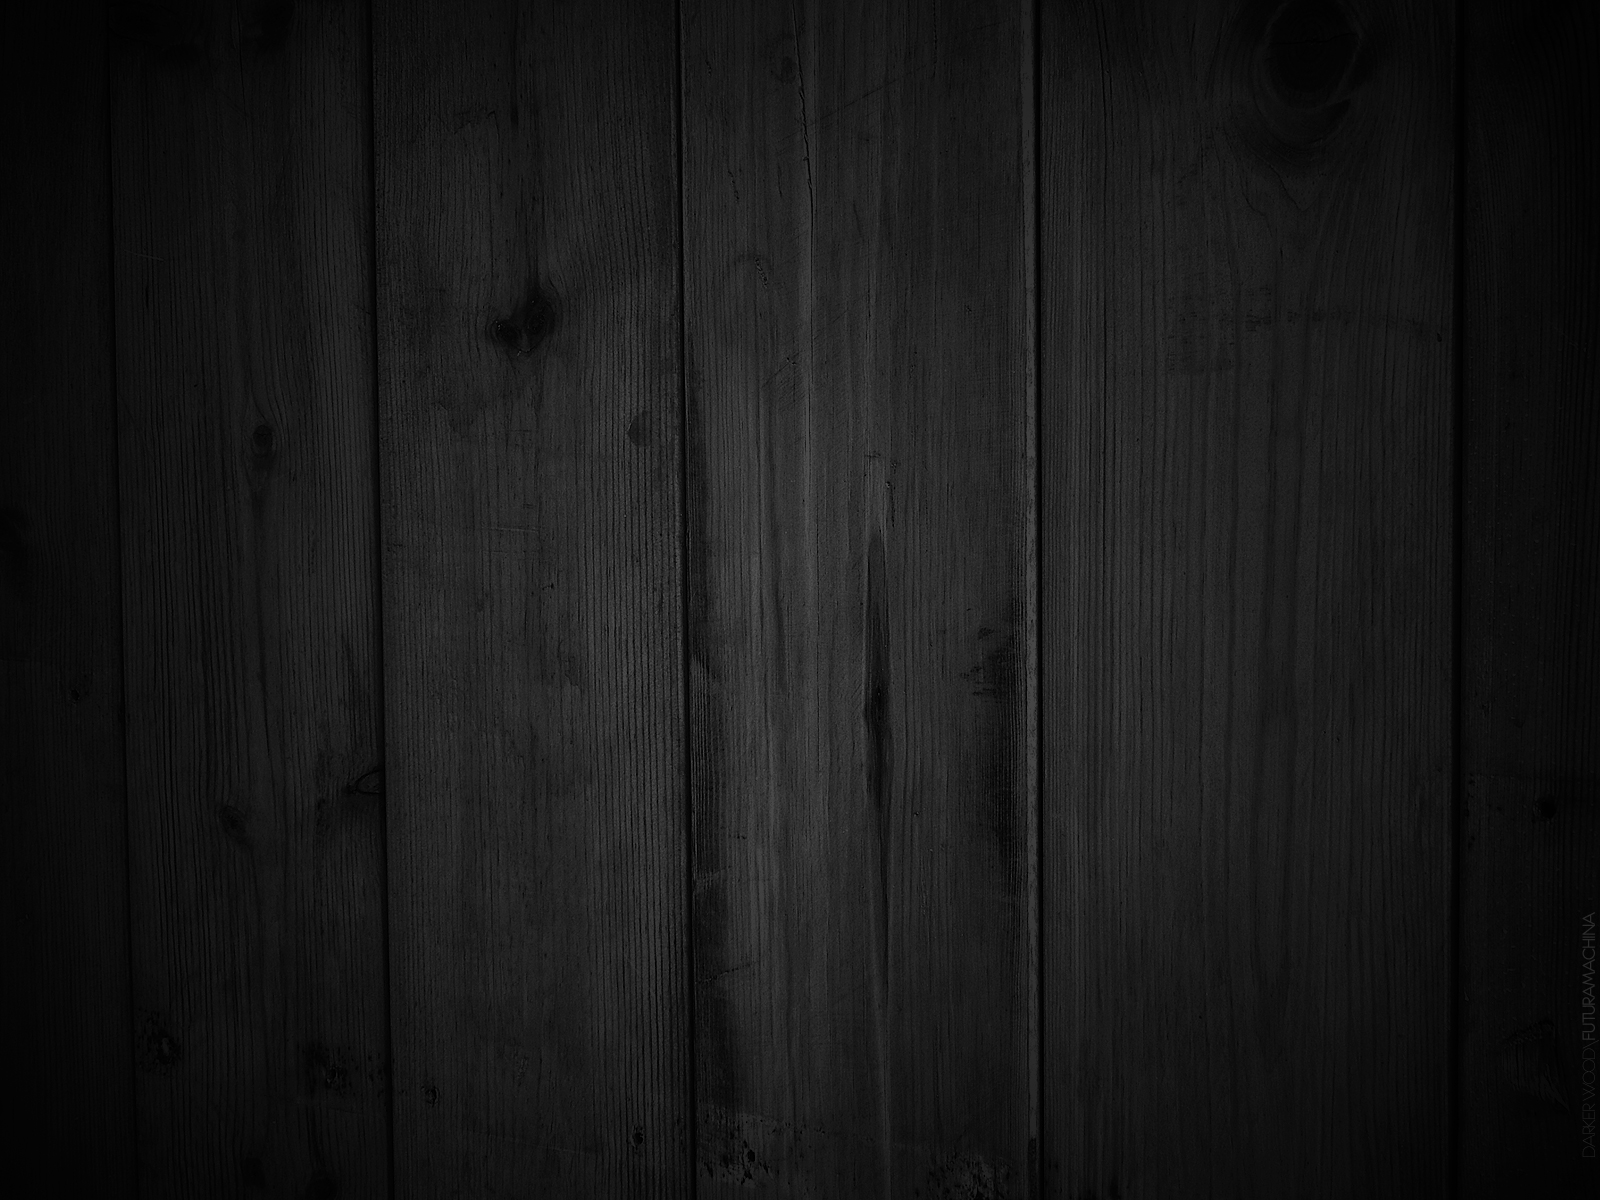 texture wood, download image, photo, tree wood, wood texture, background